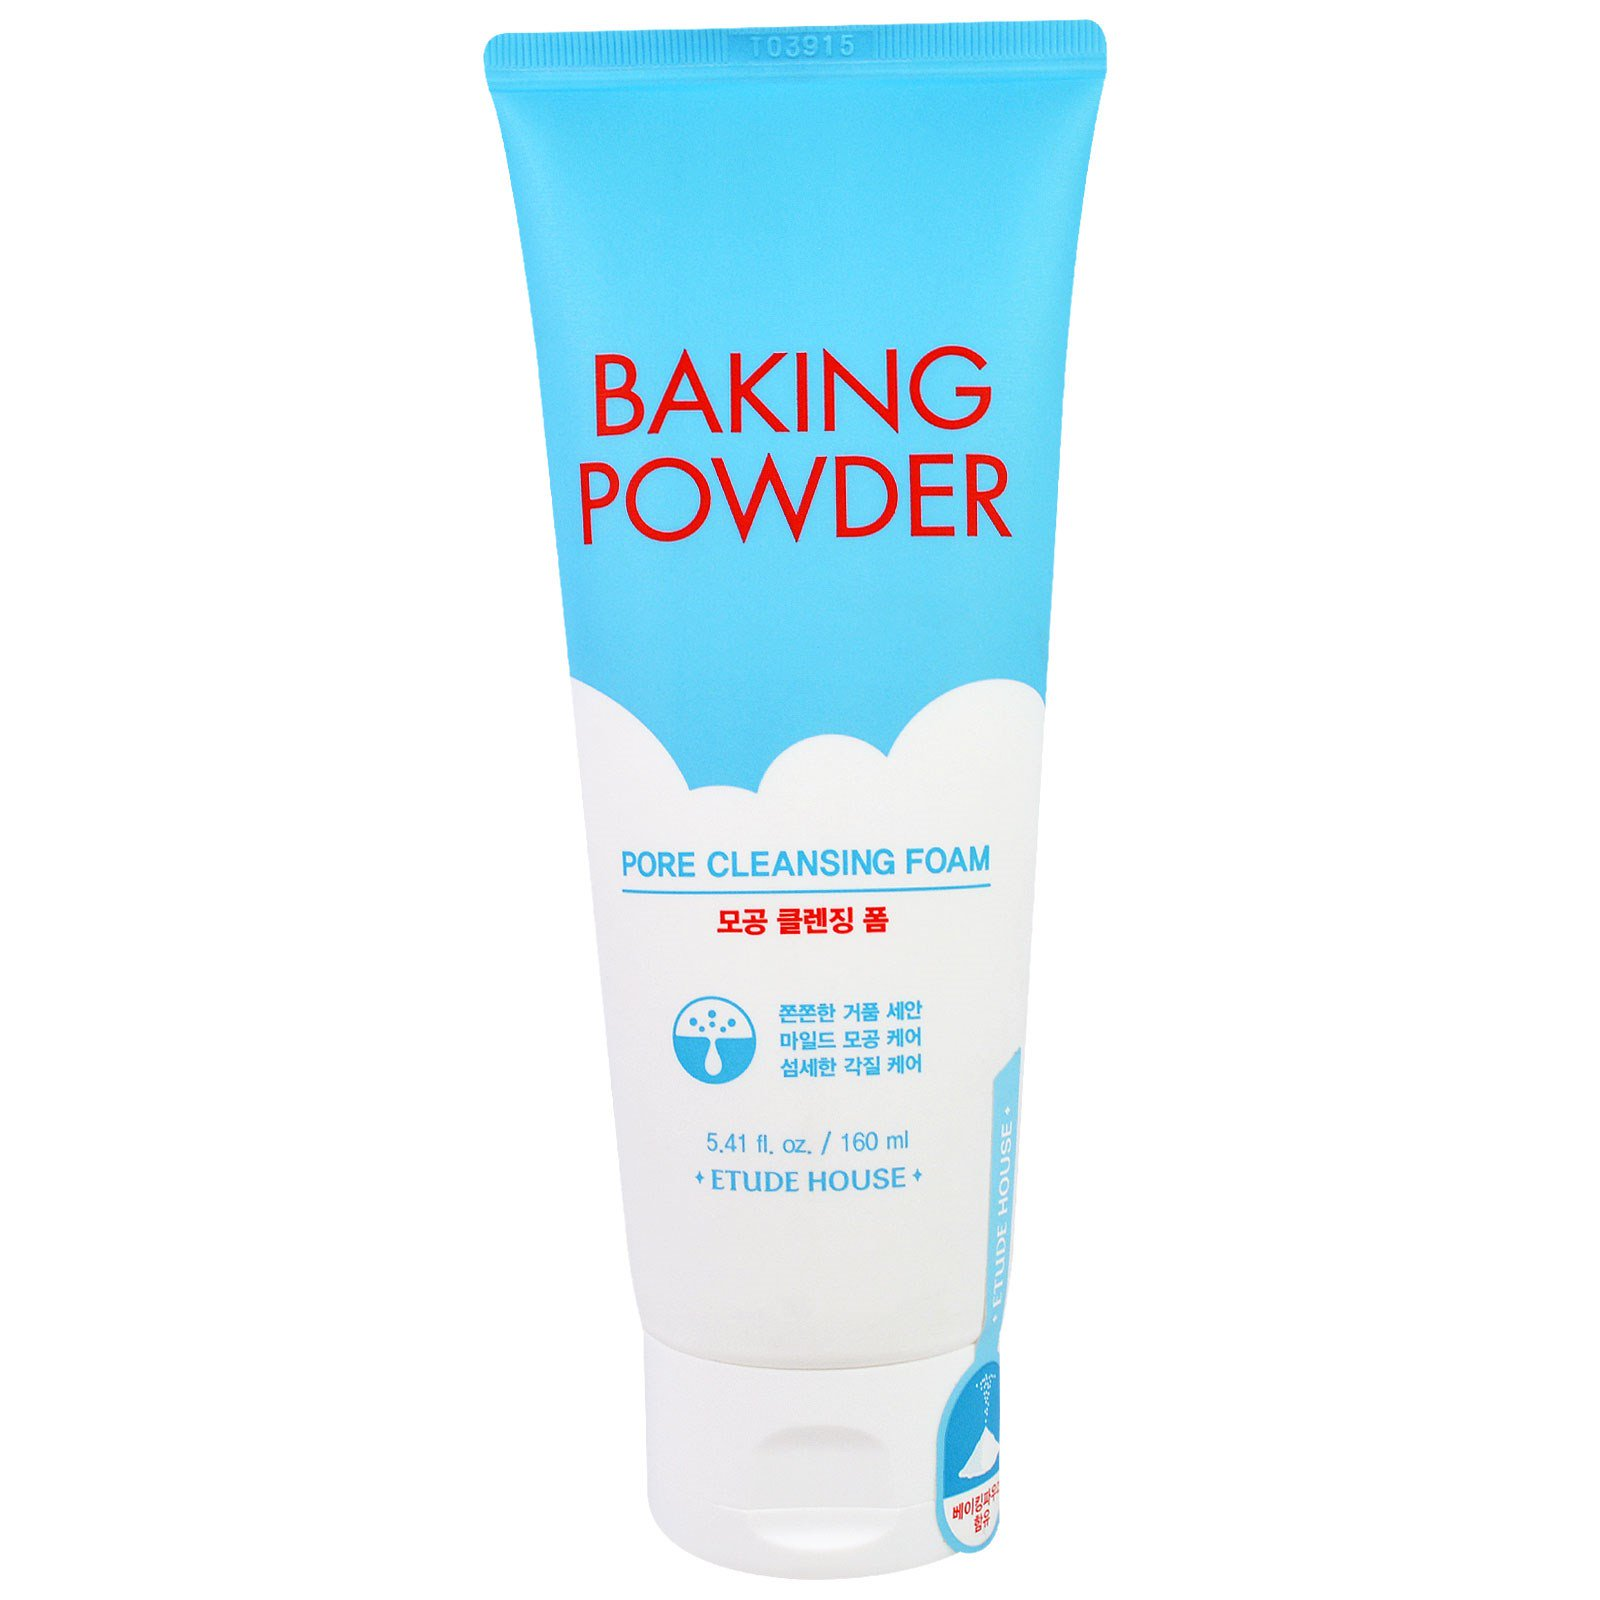 Baking powder etude